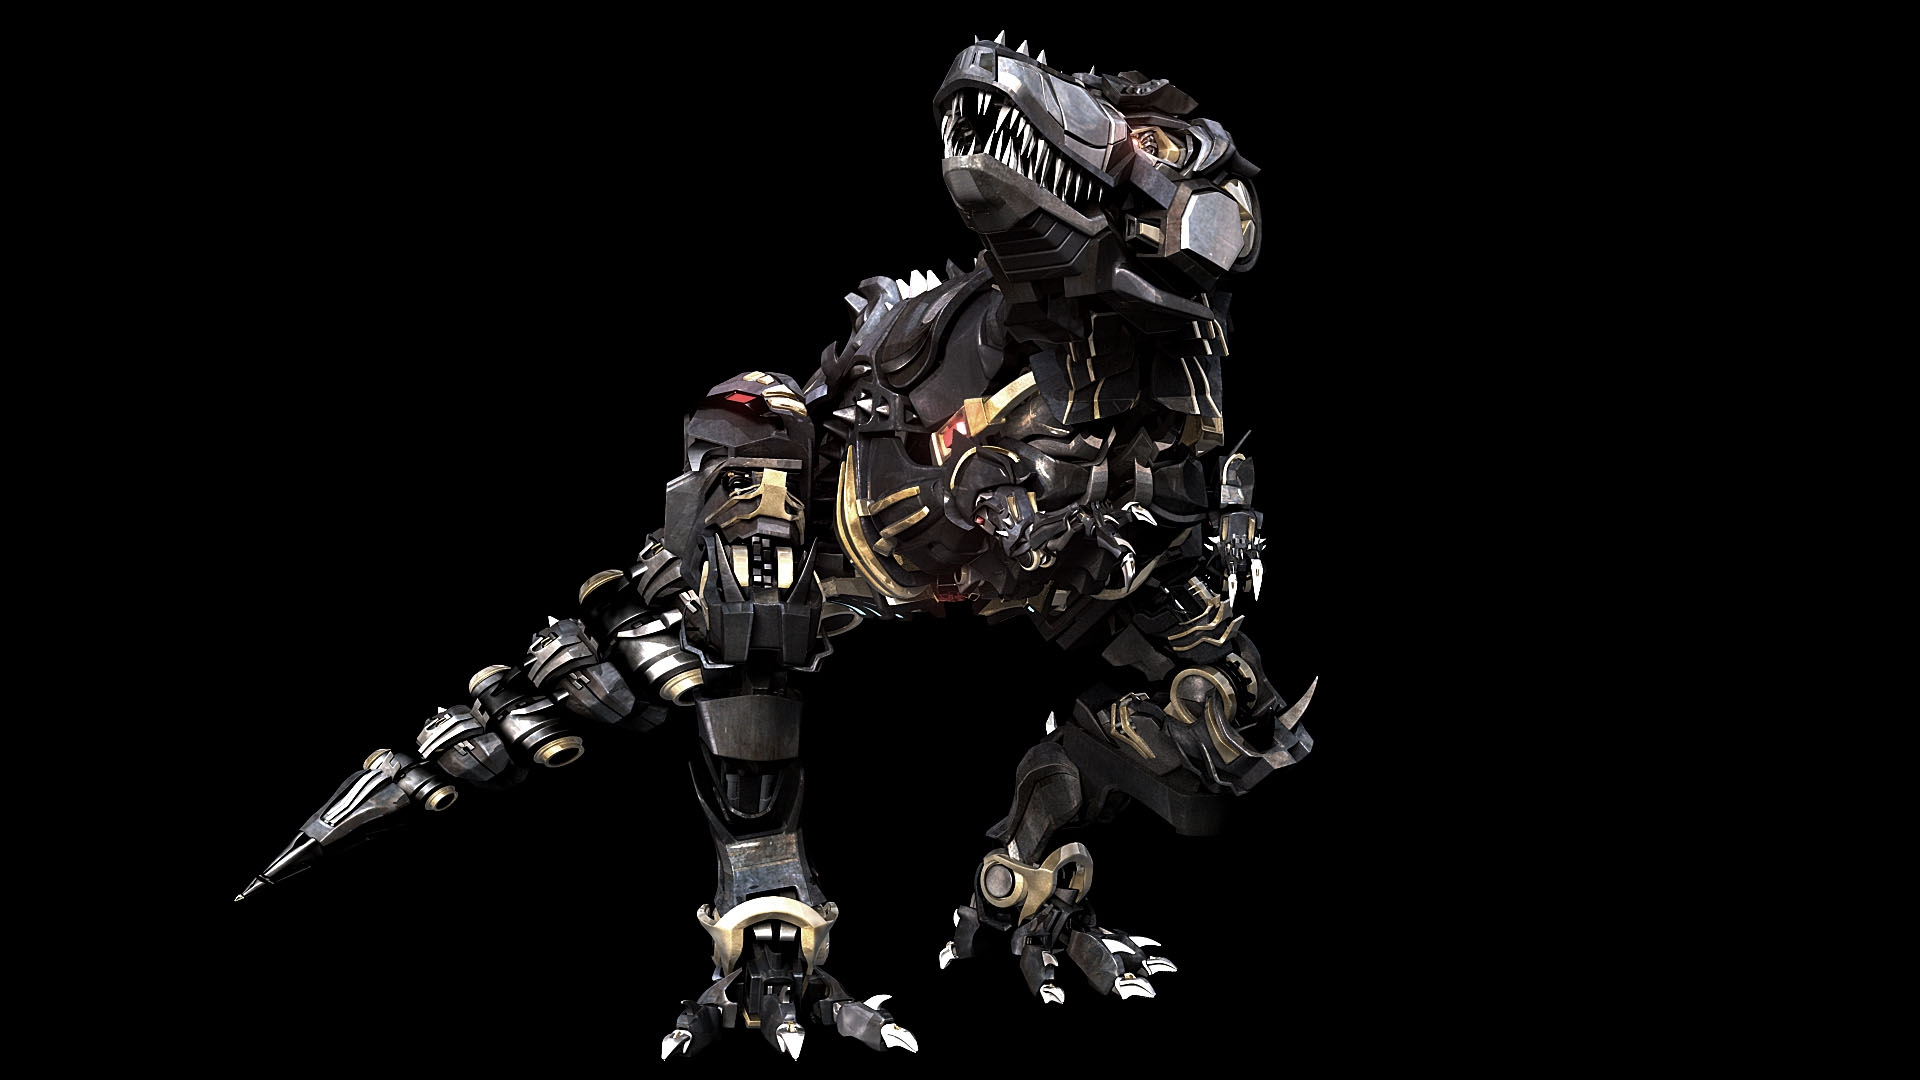 Hd Wallpapers For Mobile Free Download 480x800 Transformers 4 Dinobots Wallpaper